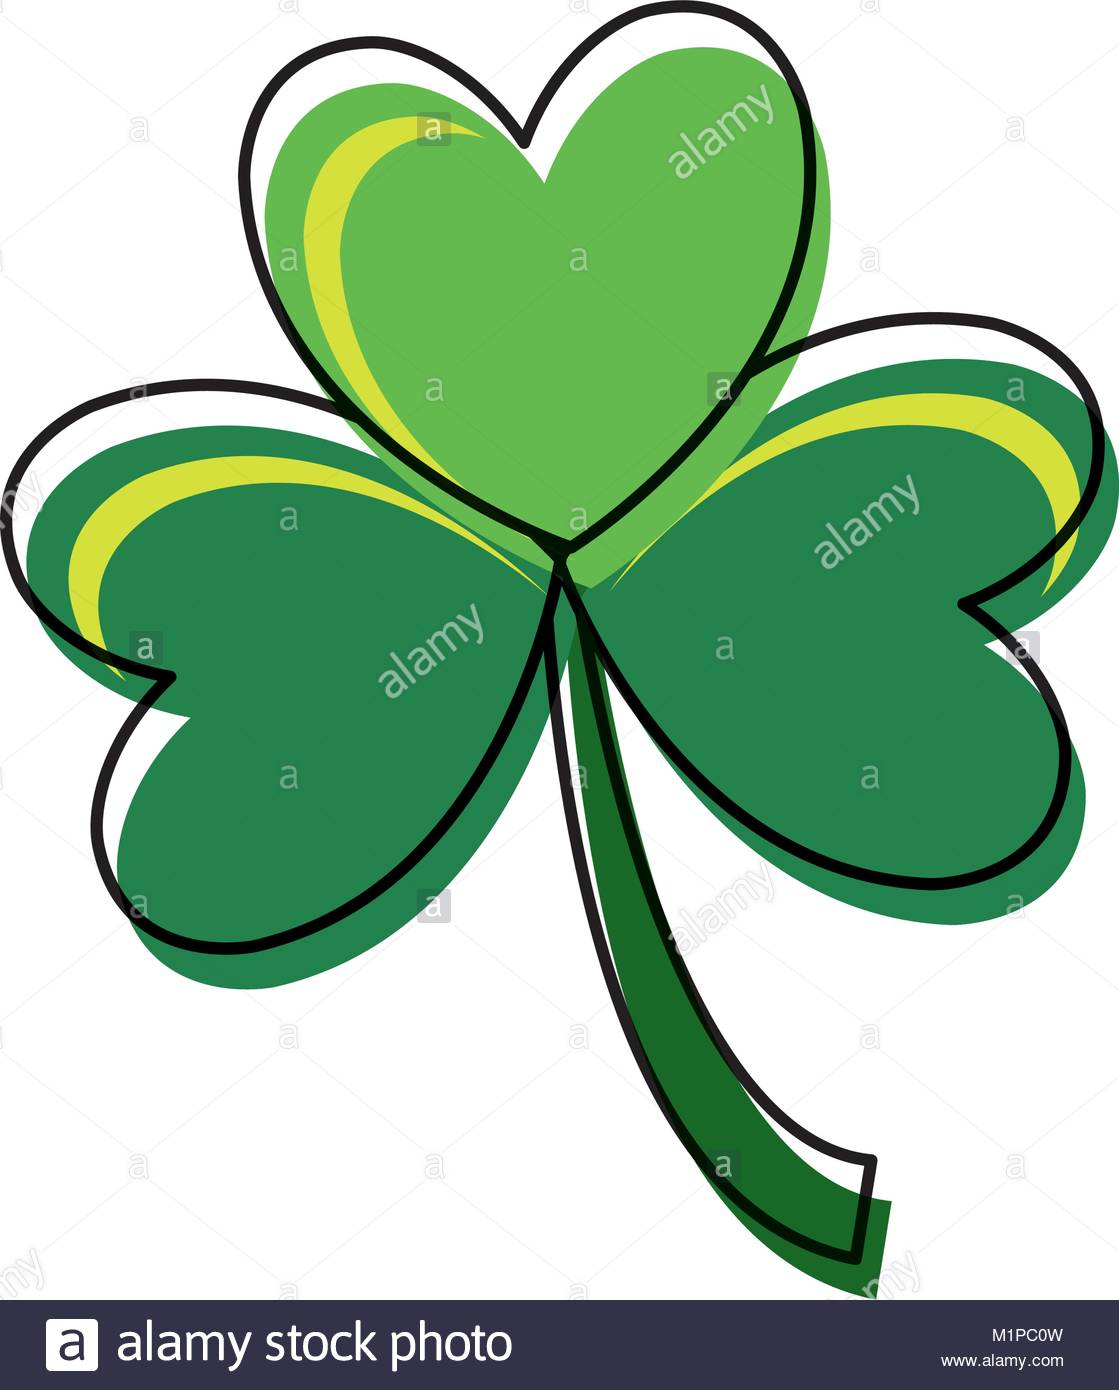 1119x1390 Three Leaf Clover Illustration Stock Photos Amp Three Leaf Clover